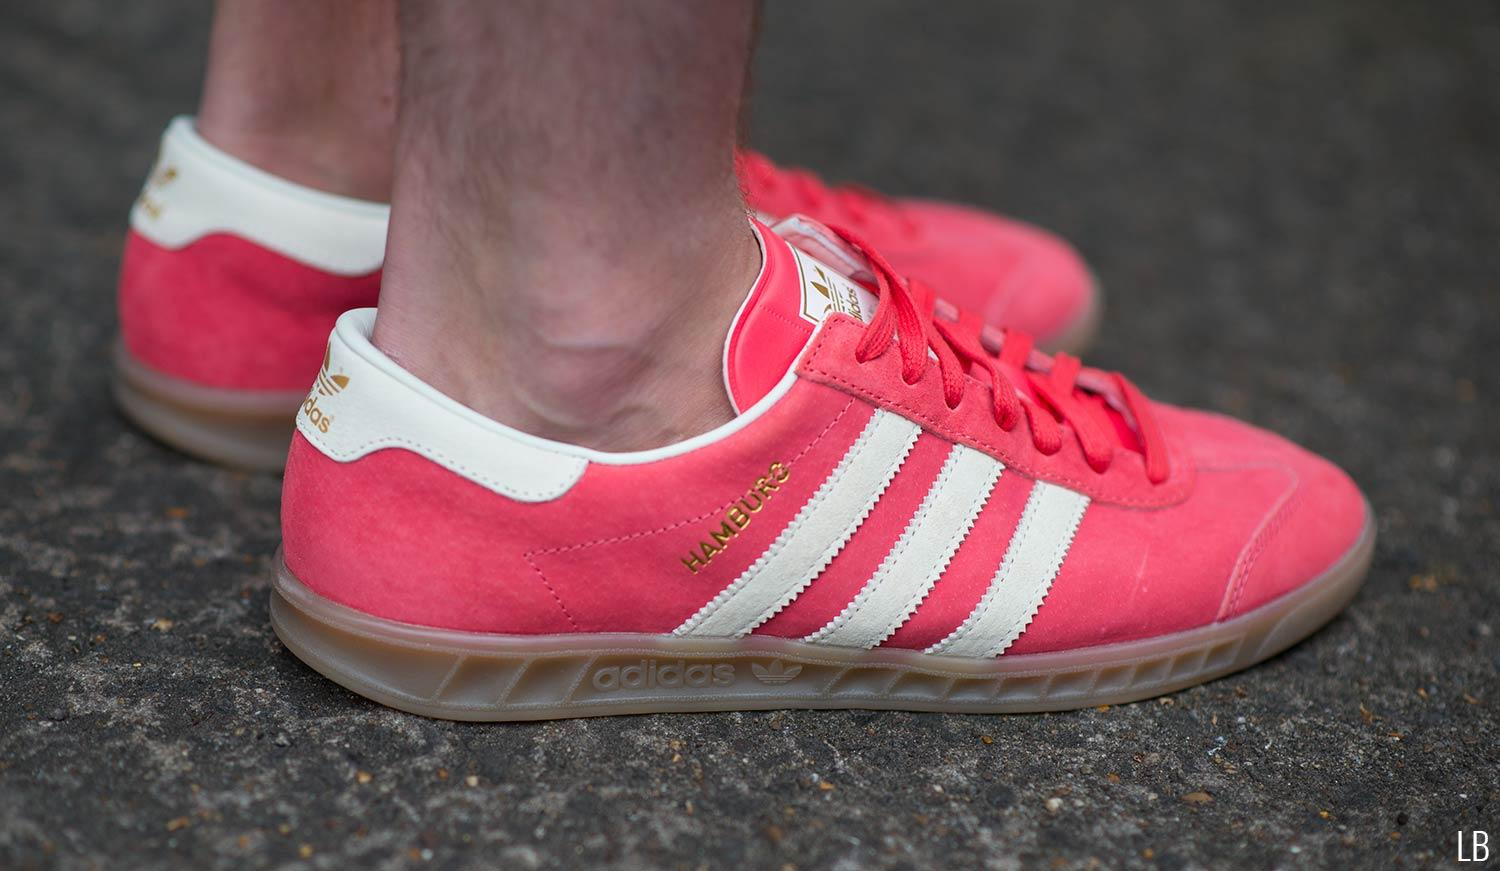 Men's Adidas Hamburg Shock Red Gum Trainers Sneakers Review 2